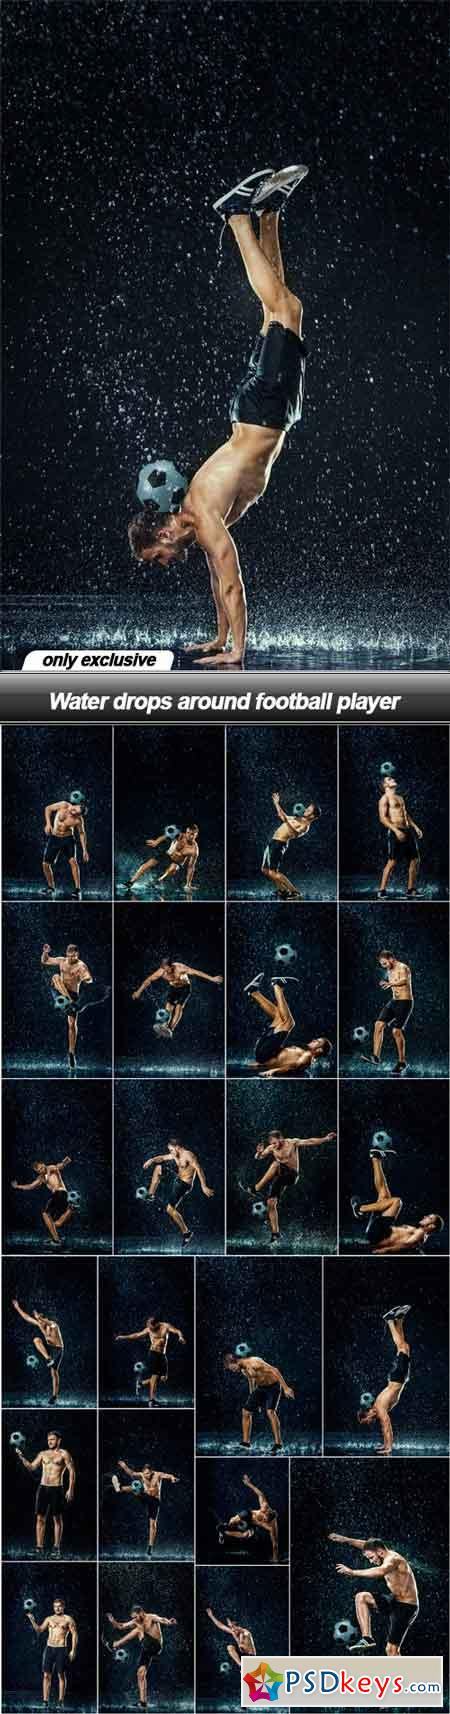 Water drops around football player - 23 UHQ JPEG